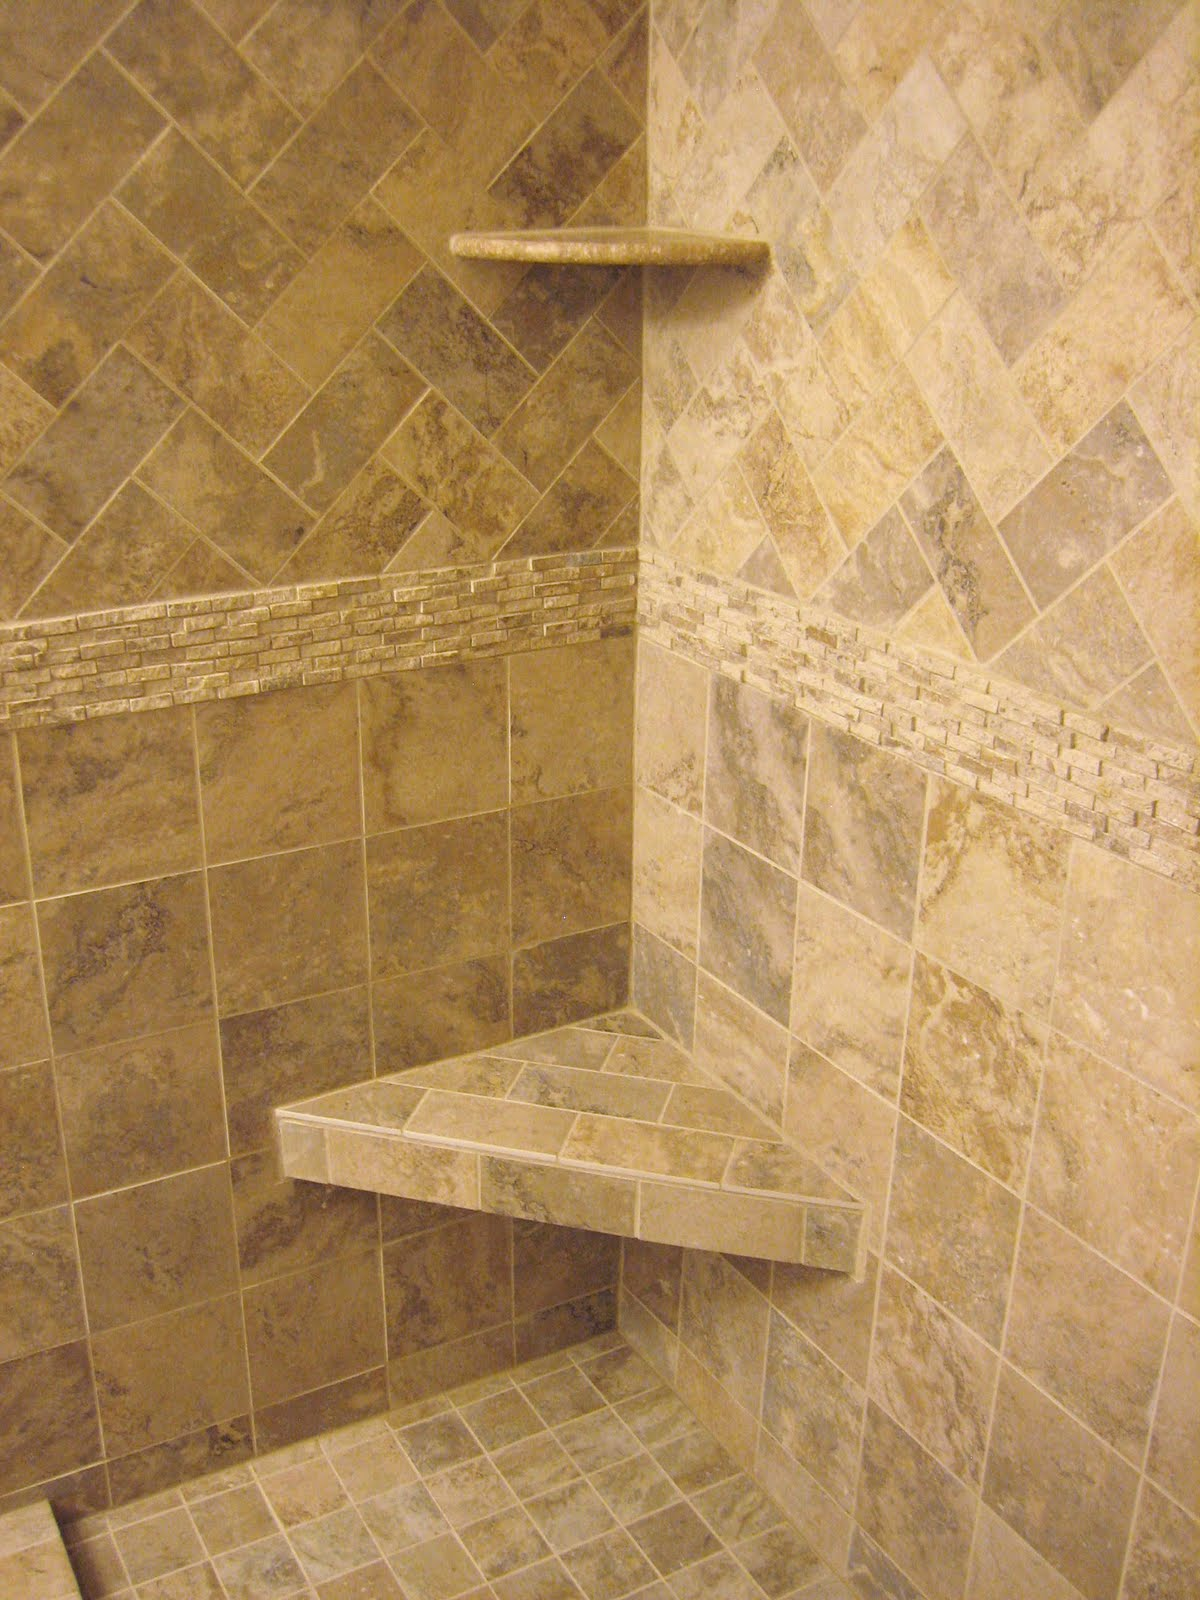 Bathroom Tiles Over Tiles : H winter showroom luxury master bath remodel athena